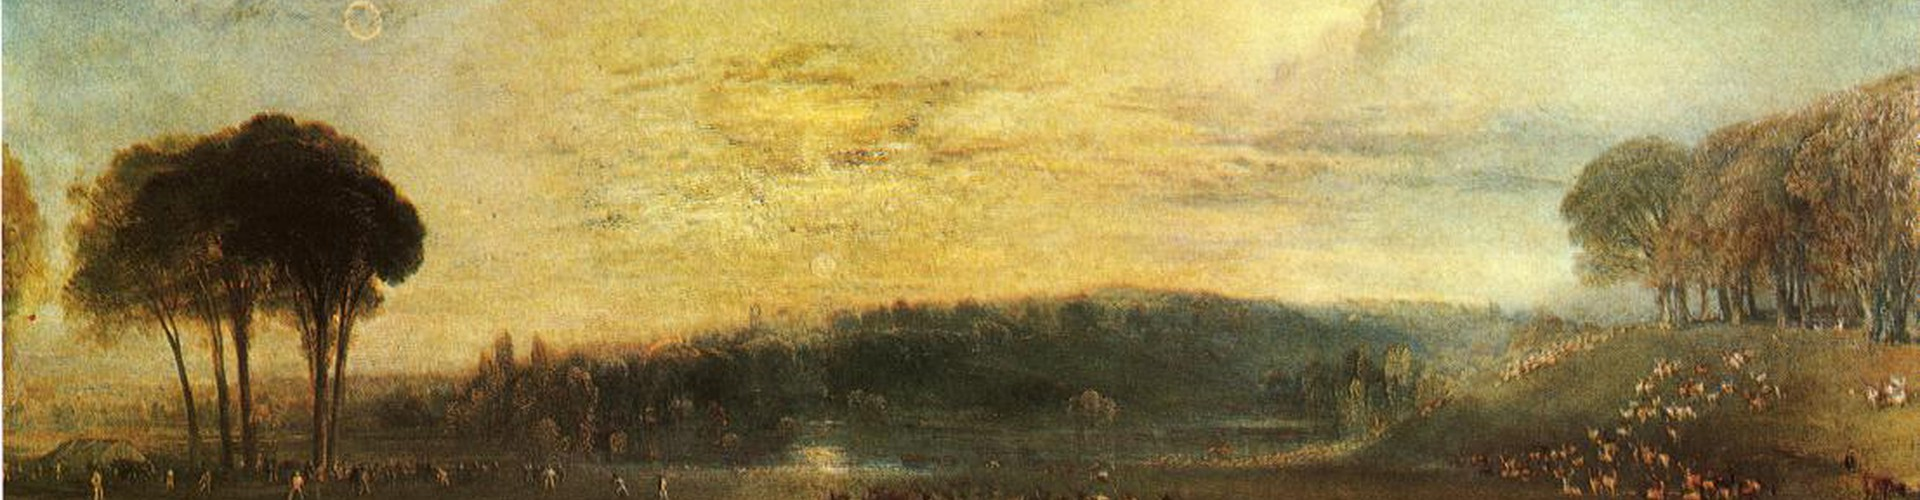 Researchers used images of old paintings, such as this one painted by the British artist J. M. W. Turner in 1829, to study the Earth's past atmosphere